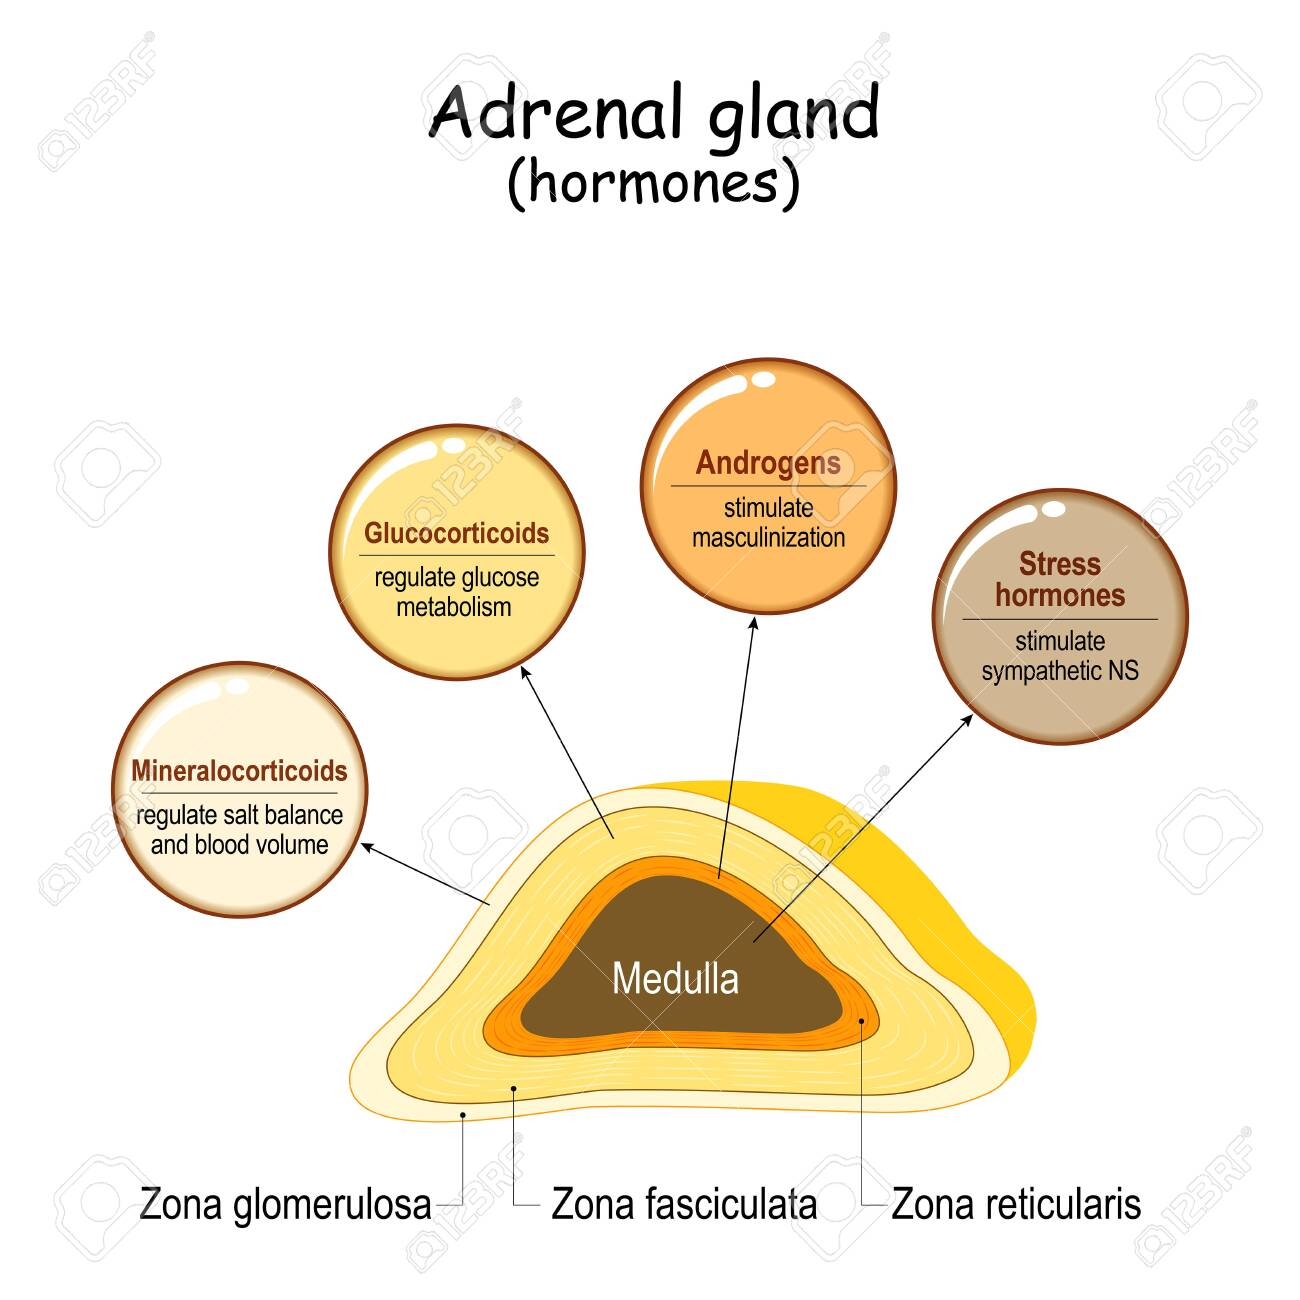 Hormones Of The Adrenal Gland Labeled Scheme With All Hormones